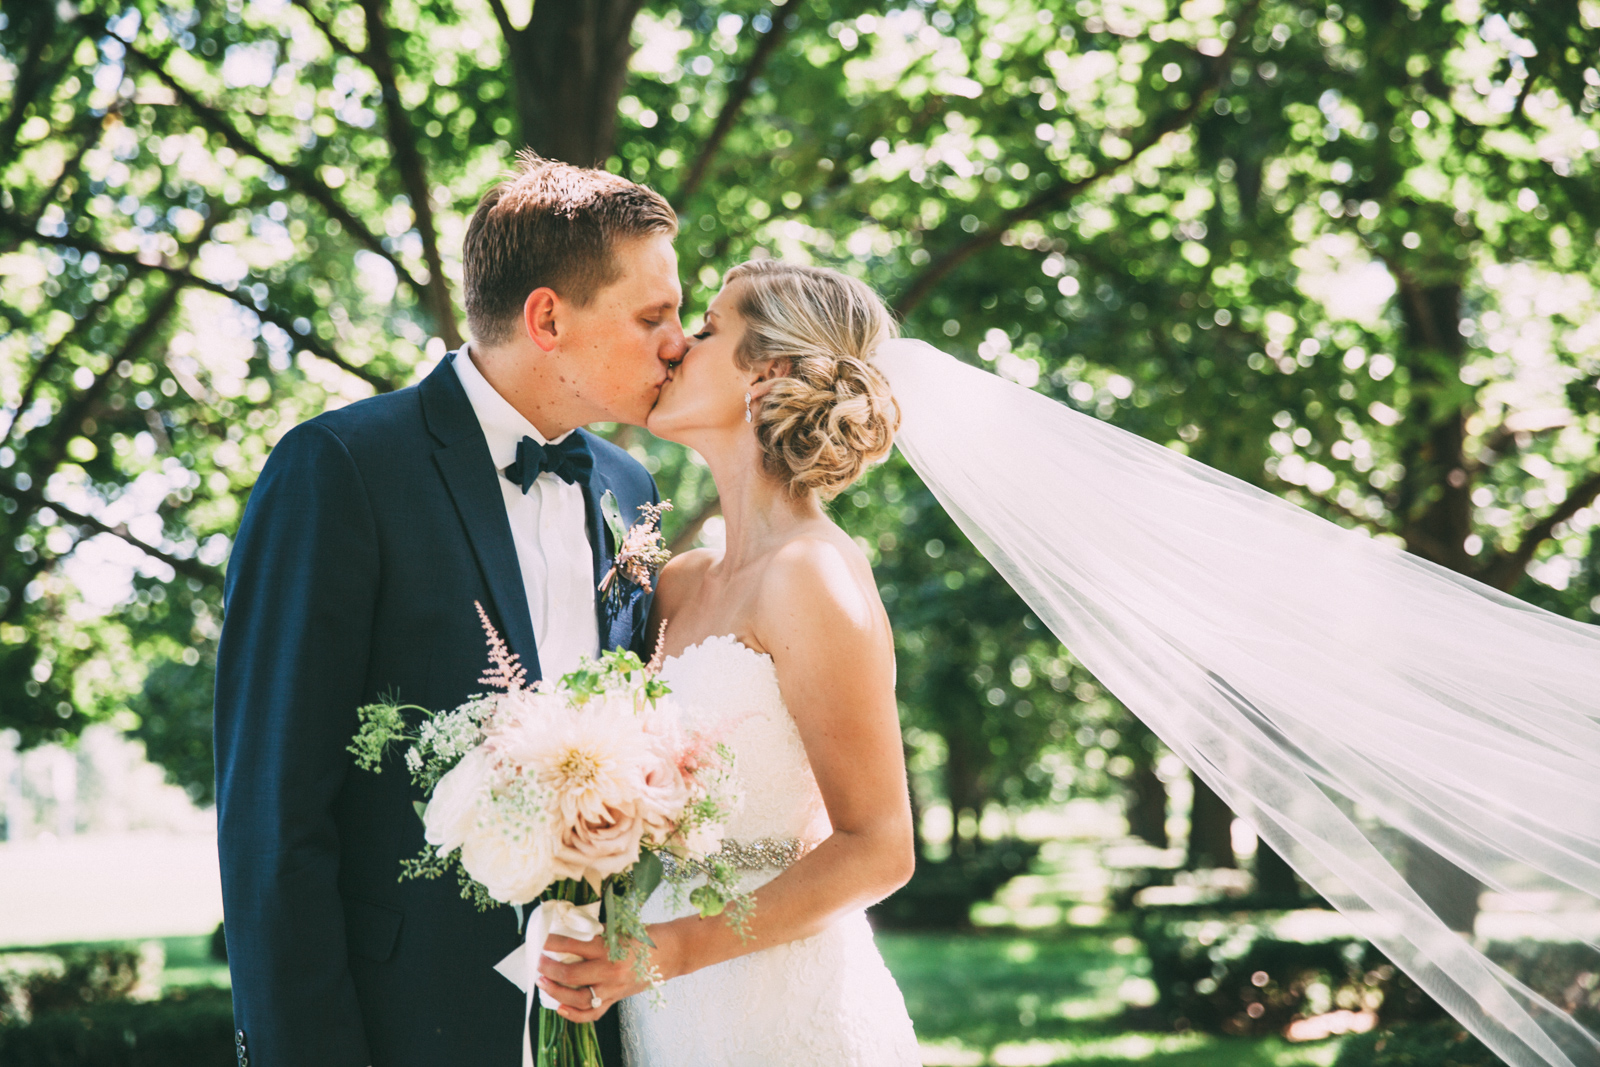 Bride's veil blowing in the breeze while she kisses the groom